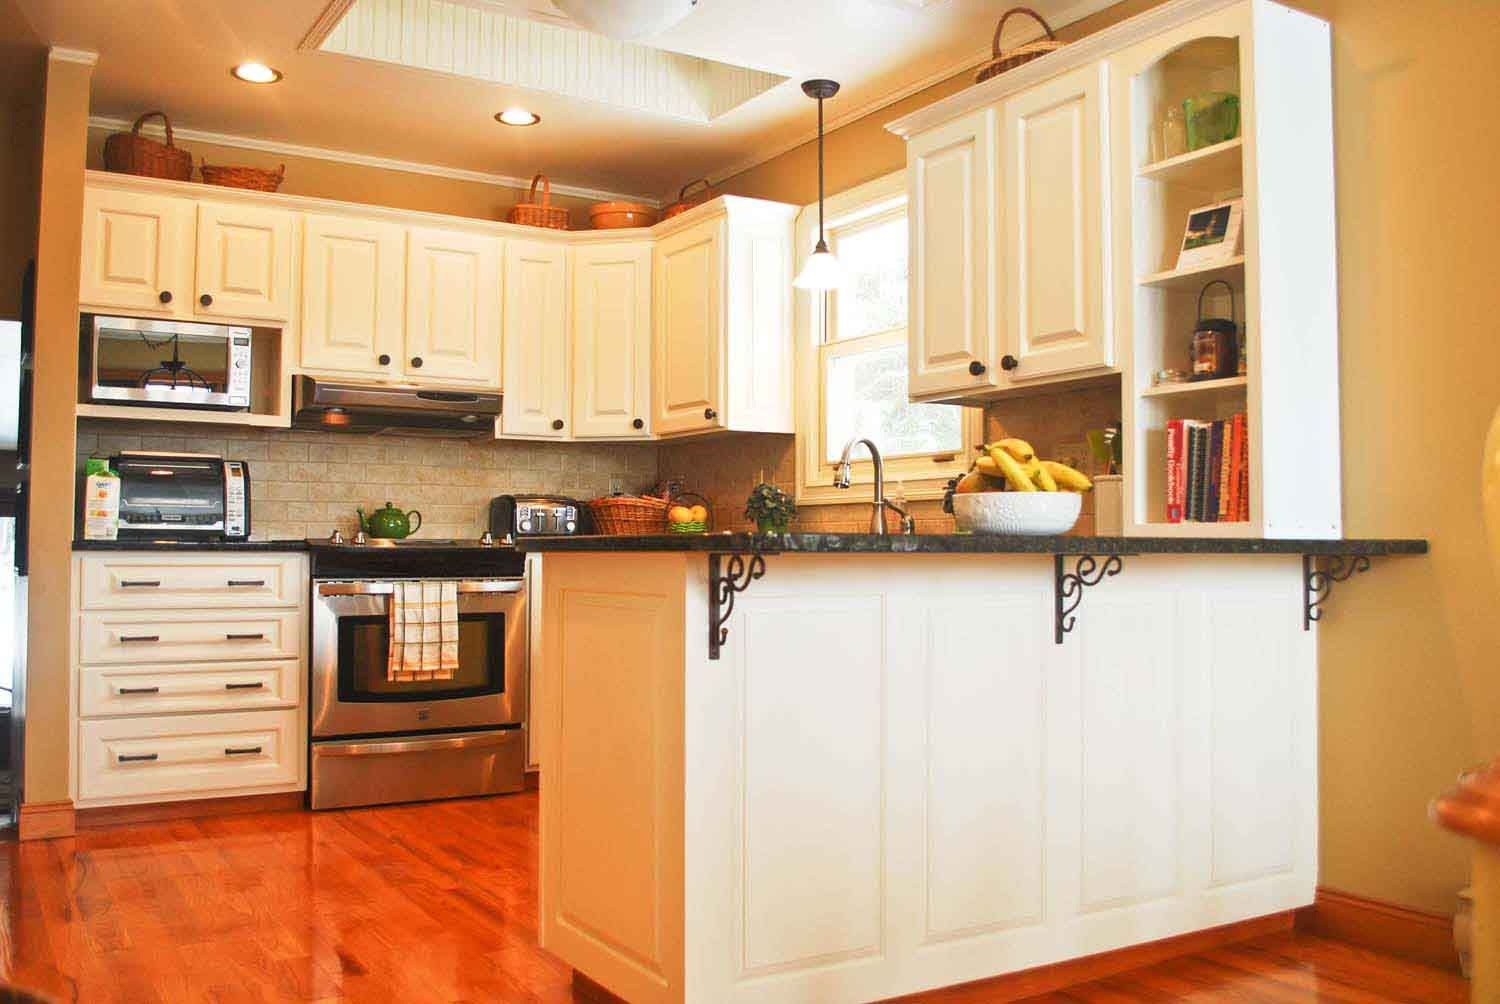 Painting Kitchen Cabinets Diy Four Easy Steps And Guides Painting Kitchen Cabinets White White Kitchen Cabinets White Kitchen Design